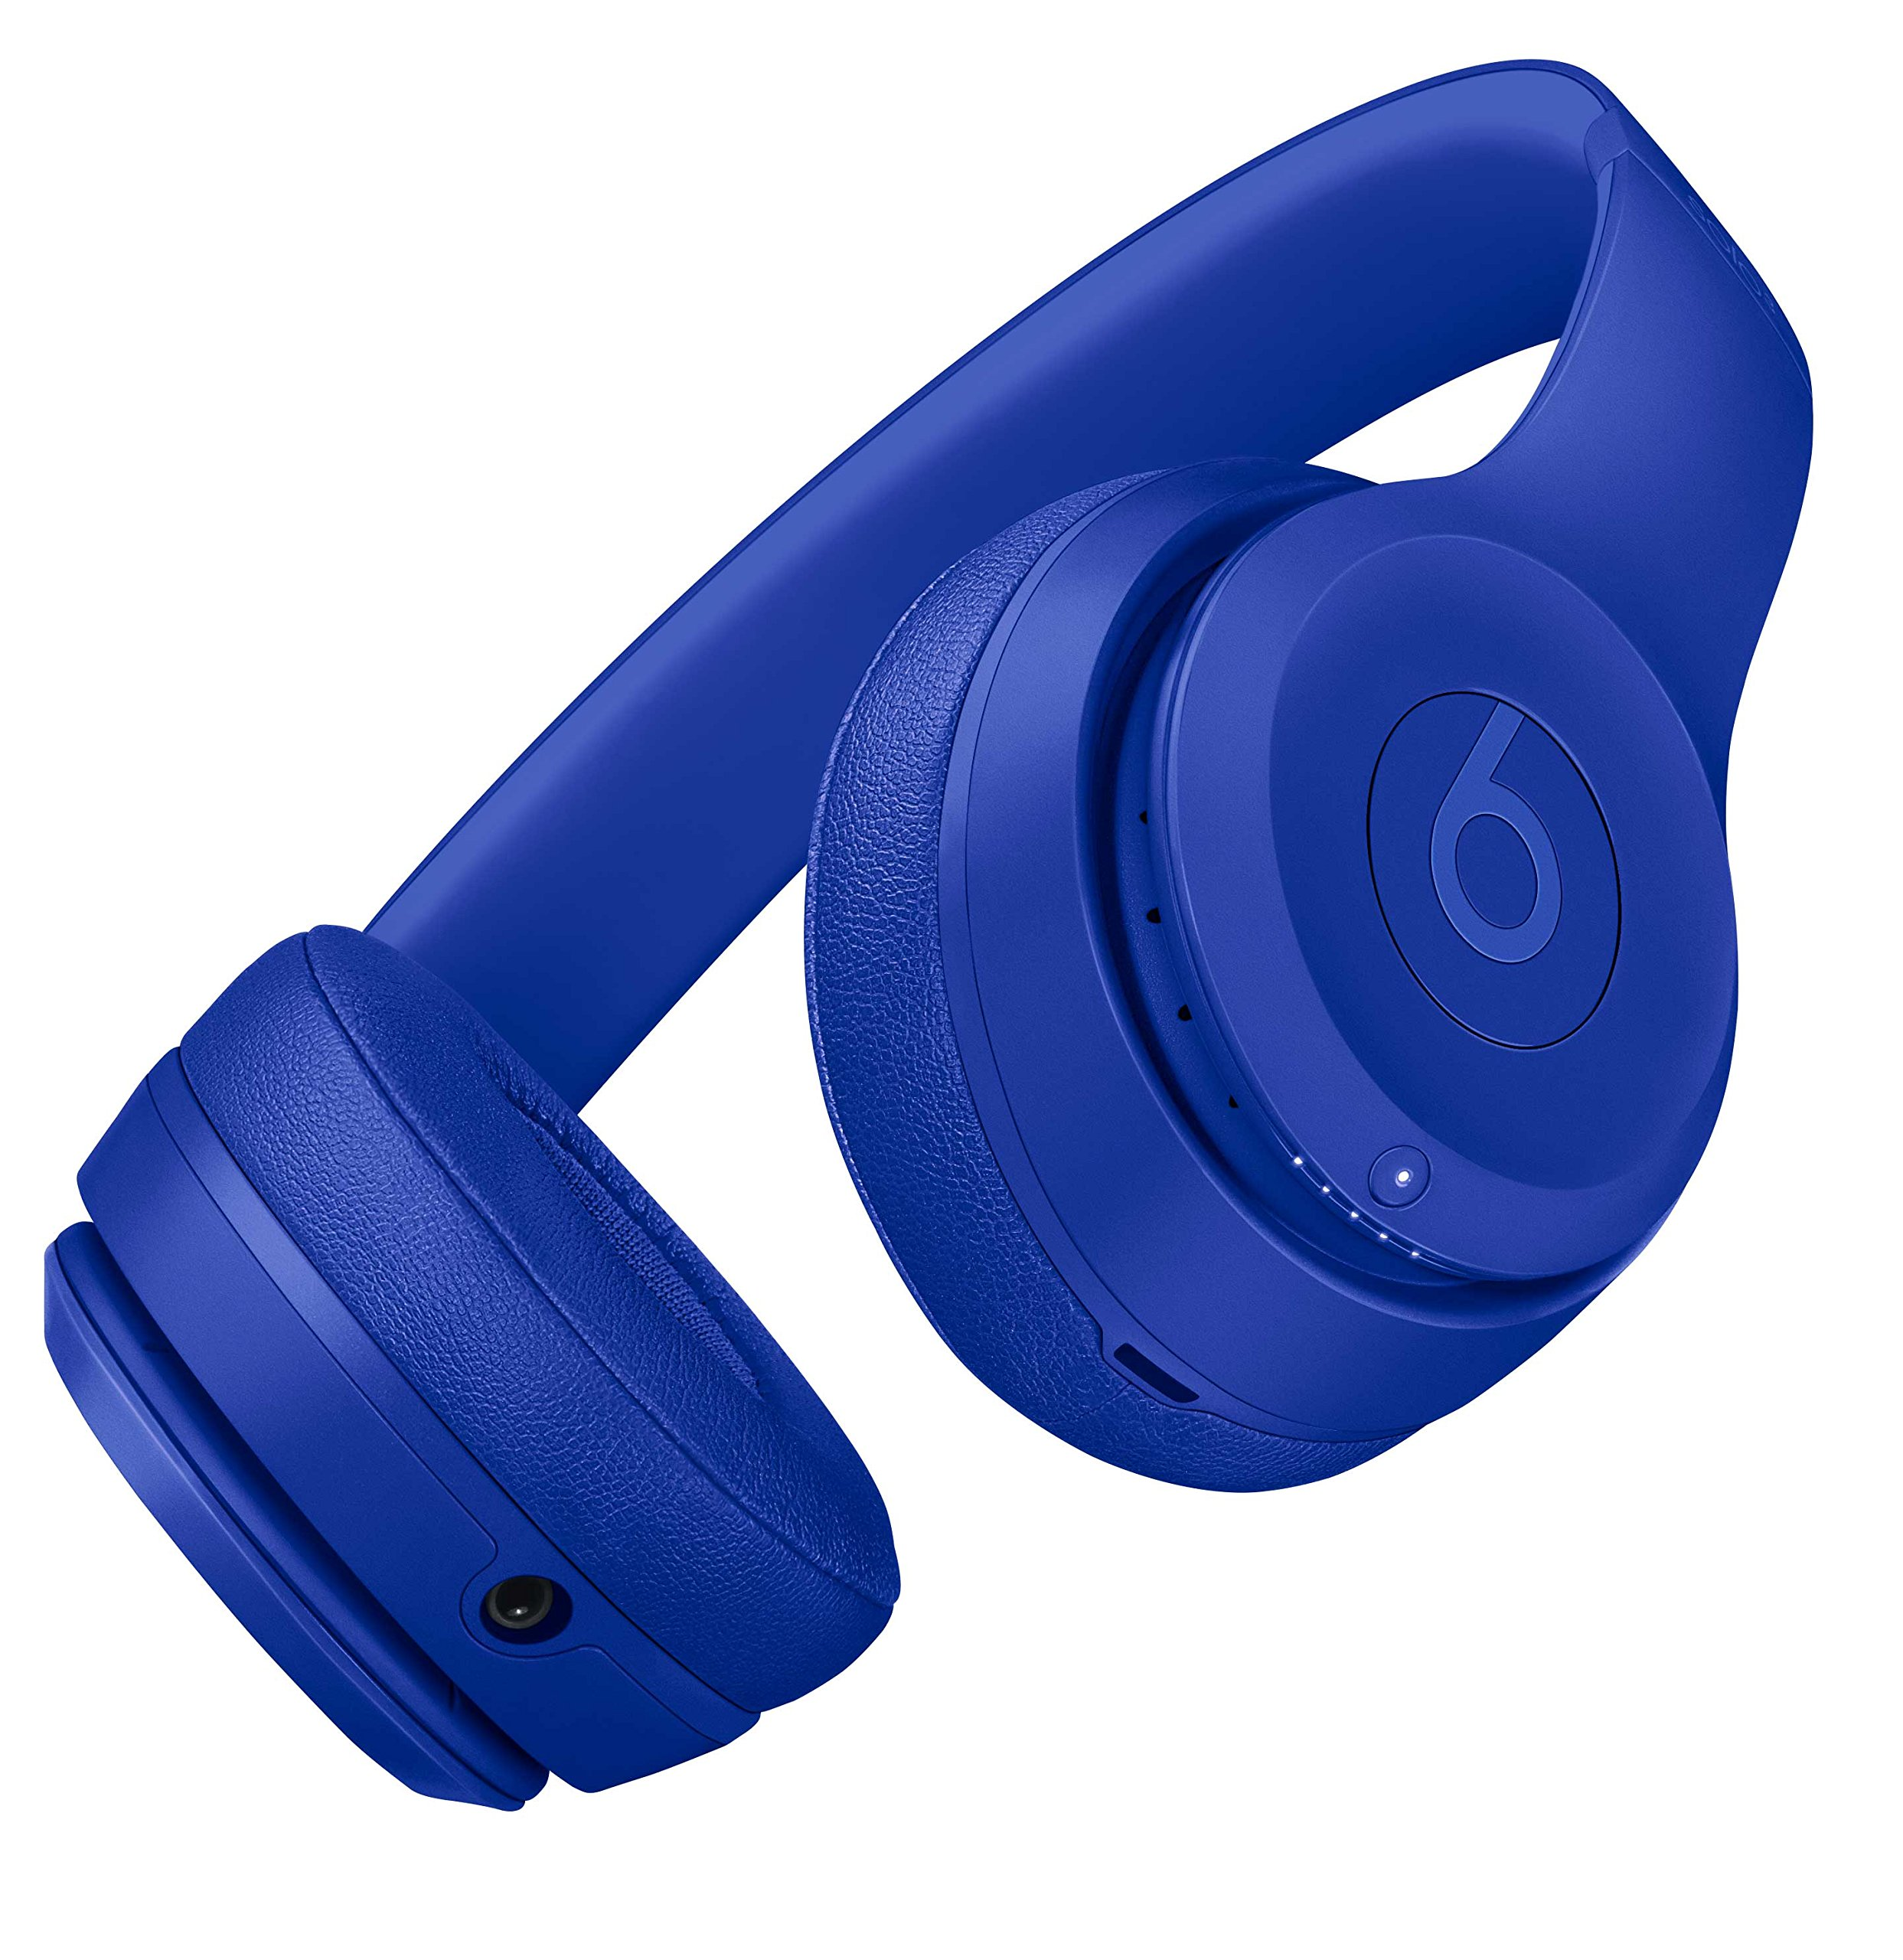 Beats Solo3 Wireless Kopfhörer - Neighbourhood Collection - Tiefblau